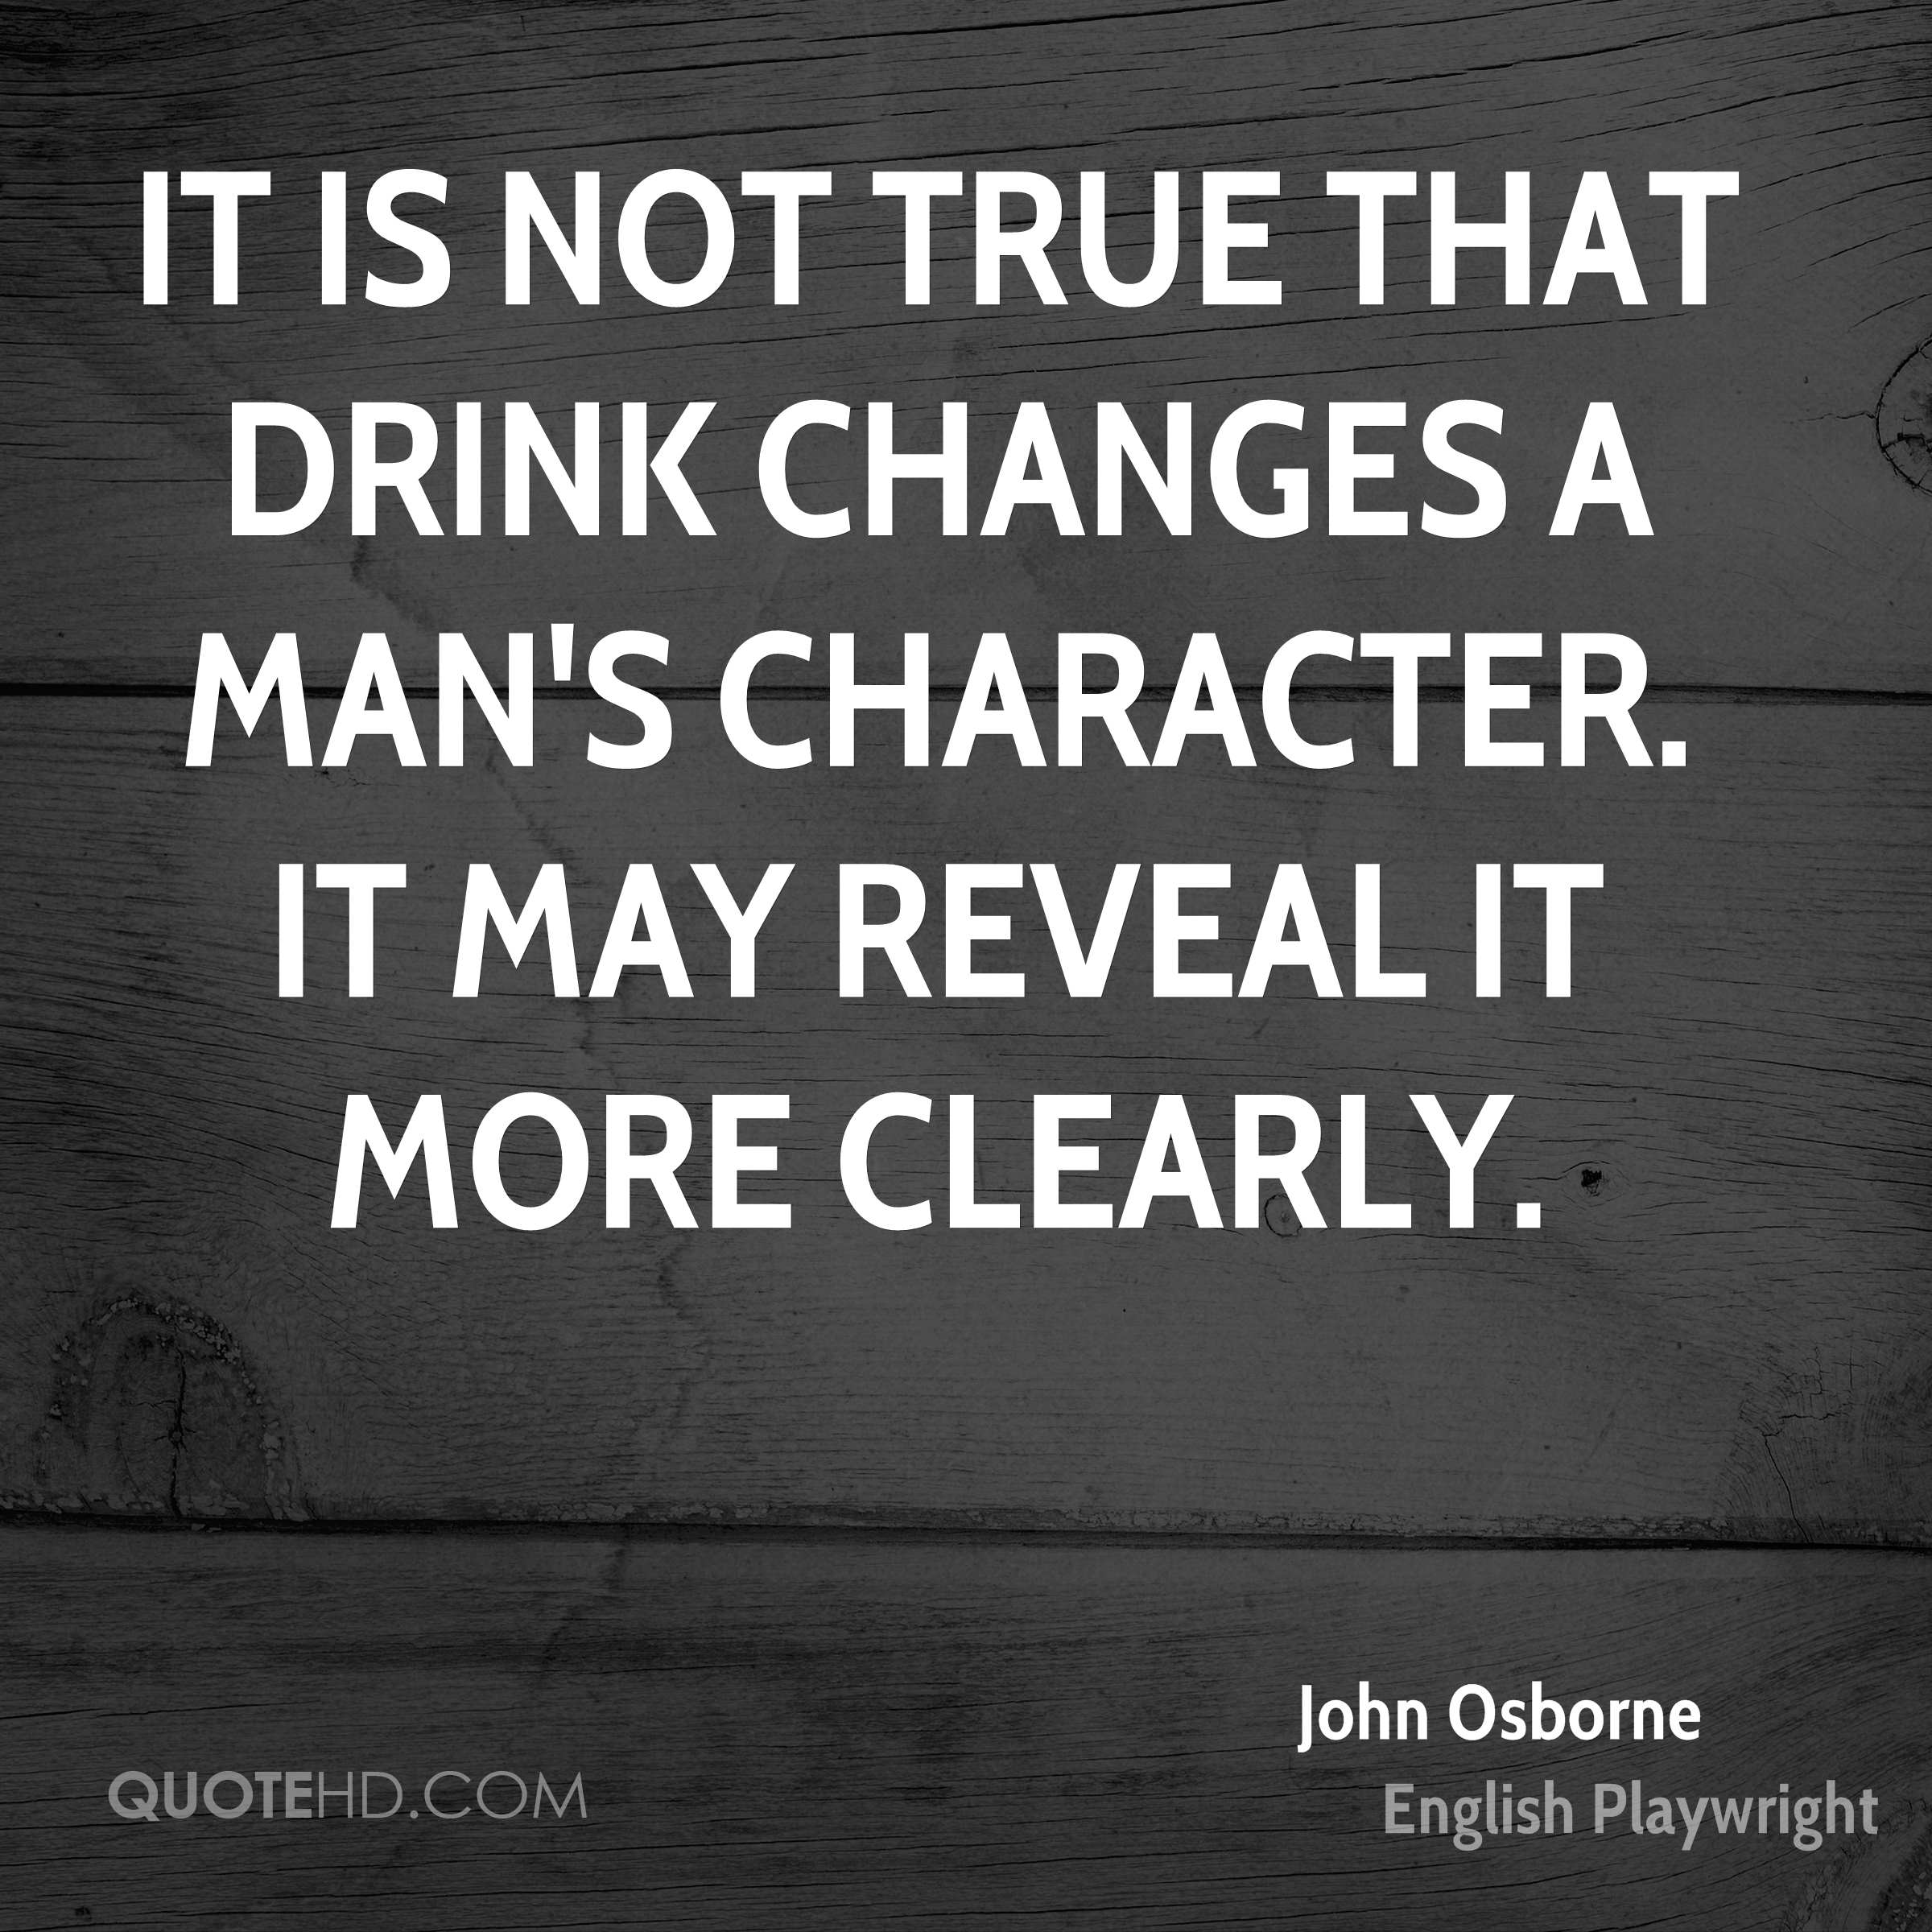 It is not true that drink changes a man's character. It may reveal it more clearly.